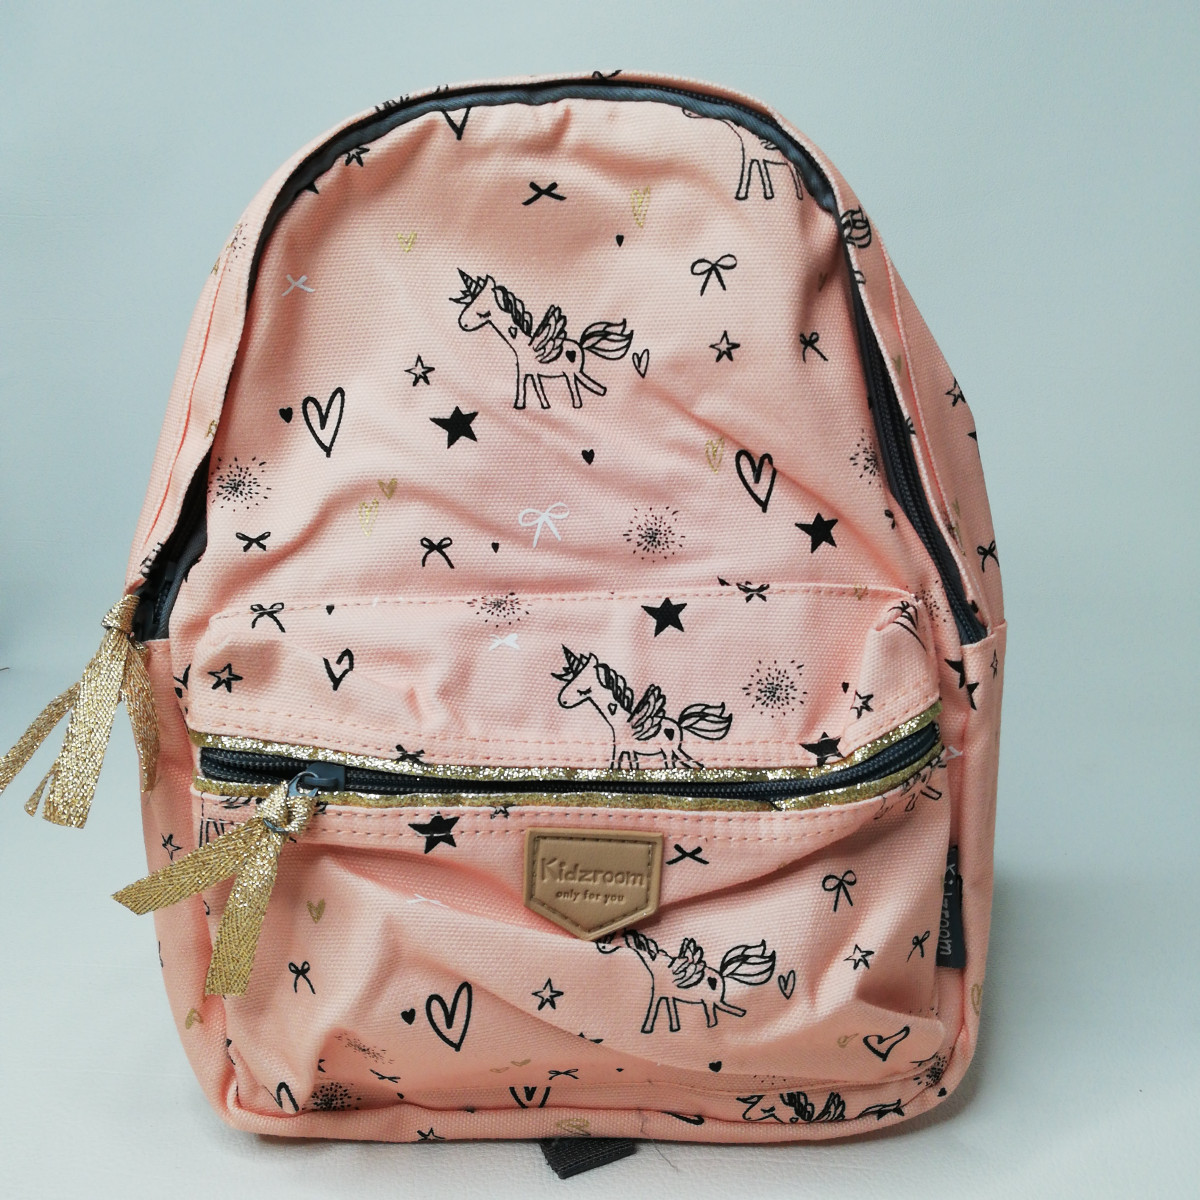 Cartable - photo 8